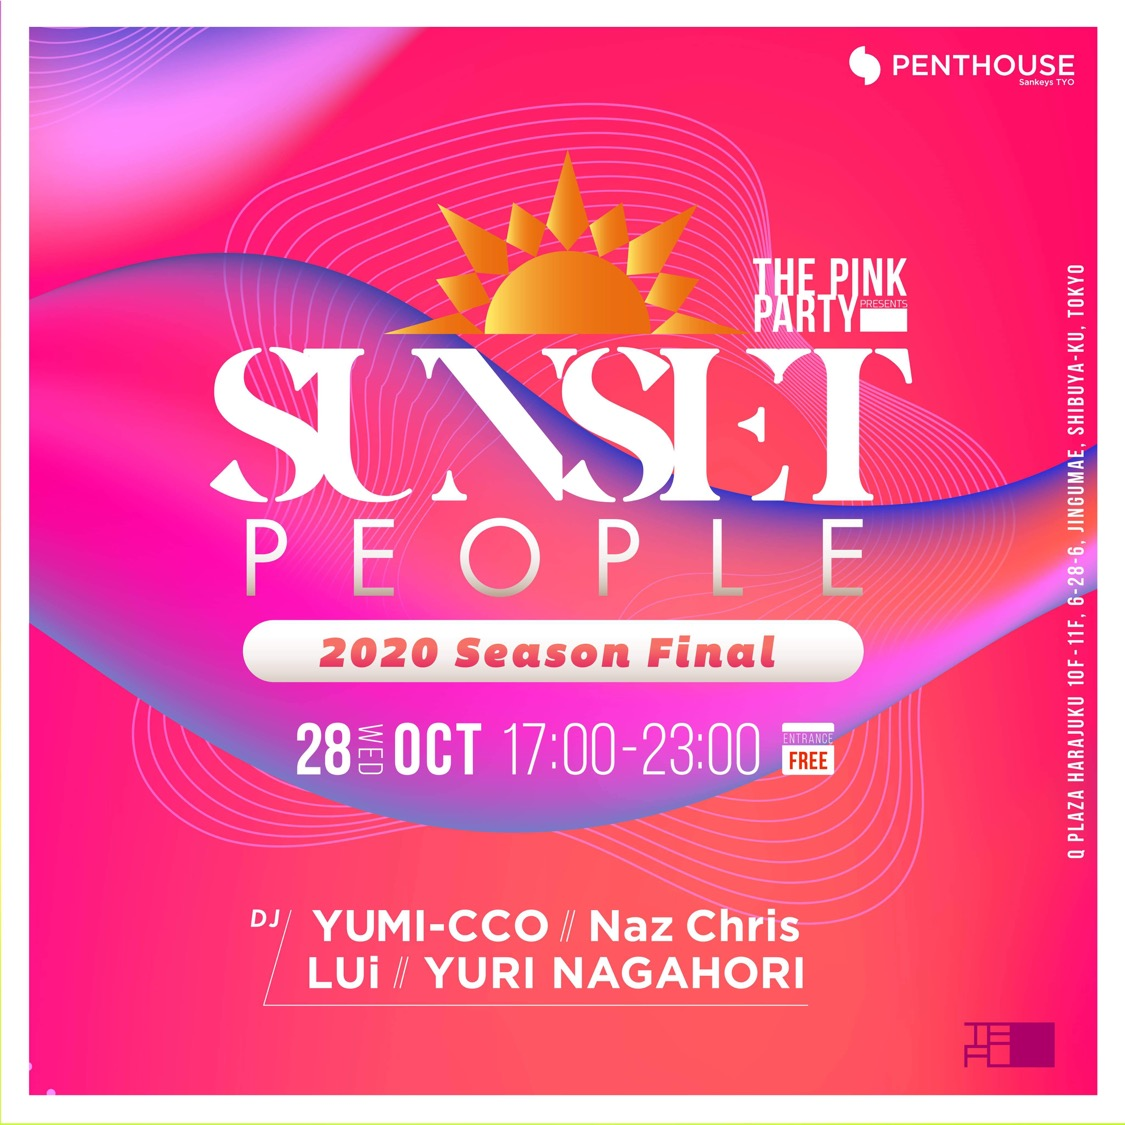 THE PINK PARTY PRESENTS SUNSET PEOPLE